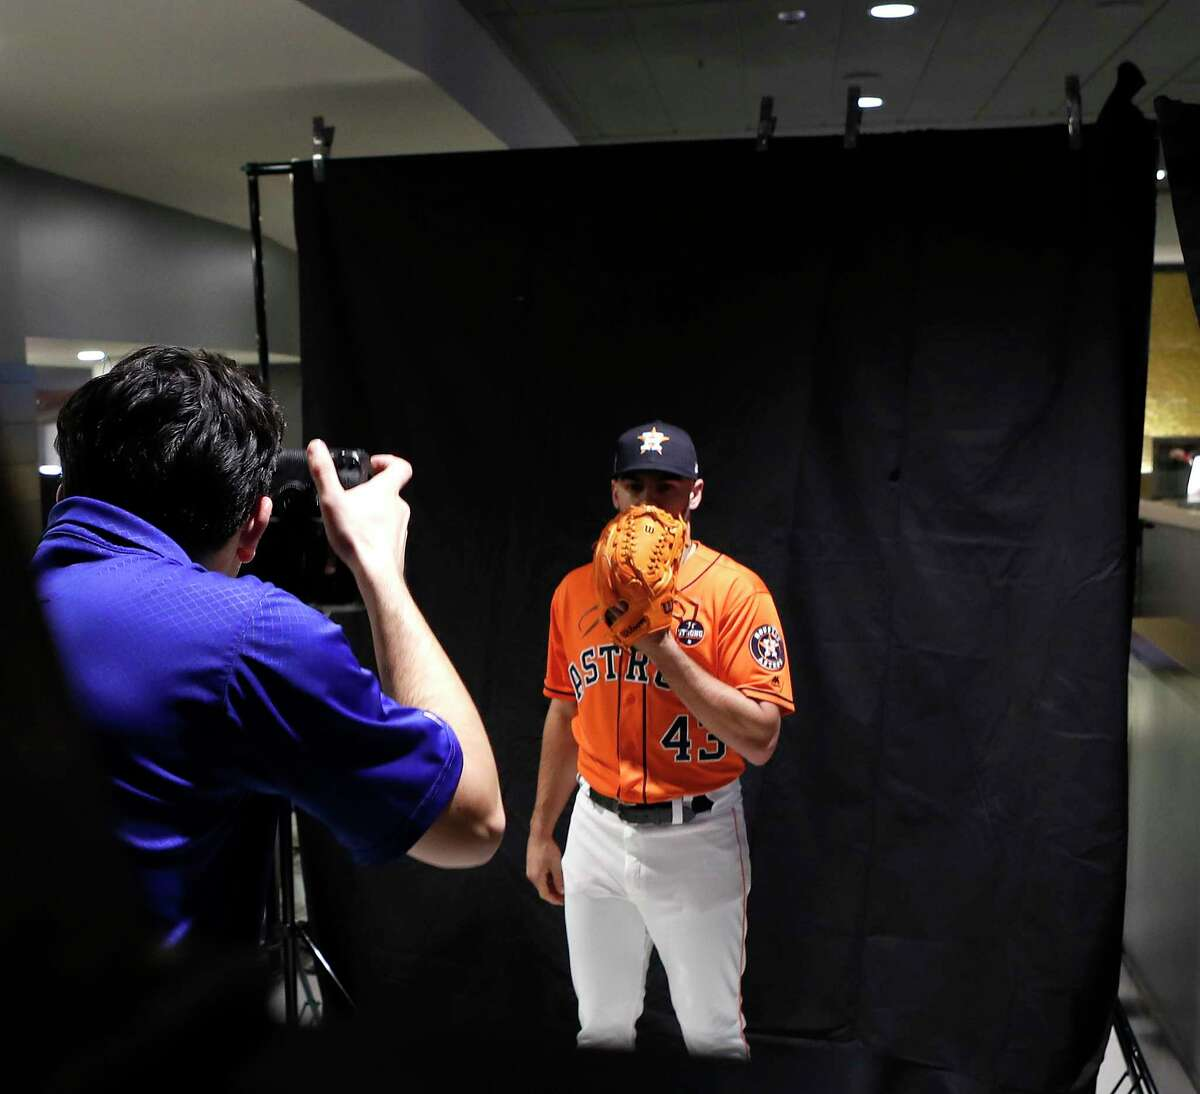 PHOTOS: A look at Astros players at World Series Media Day on Monday Lance McCullers during the World Series Media Day at Dodger Stadium, Monday, Oct. 23, 2017, in Los Angeles. Browse through the photos for a look at the Astros at World Series Media Day on Monday.